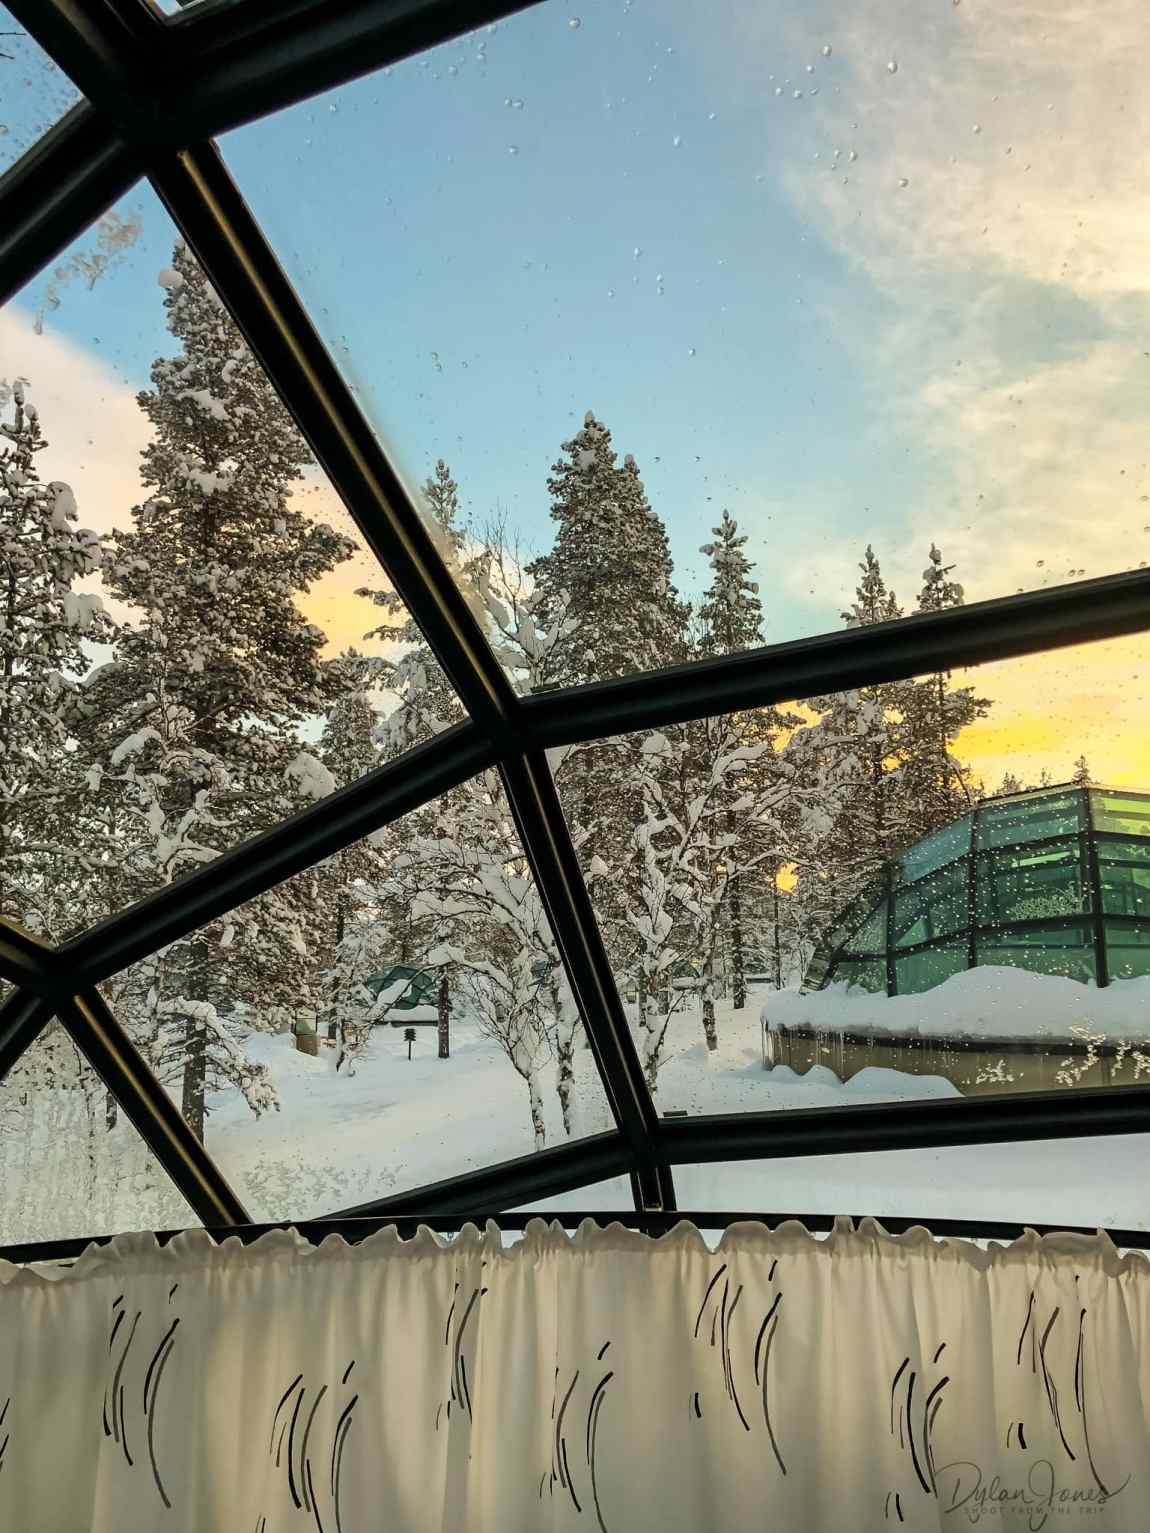 A view across to the next glass igloo at Kakslauttanen East Village